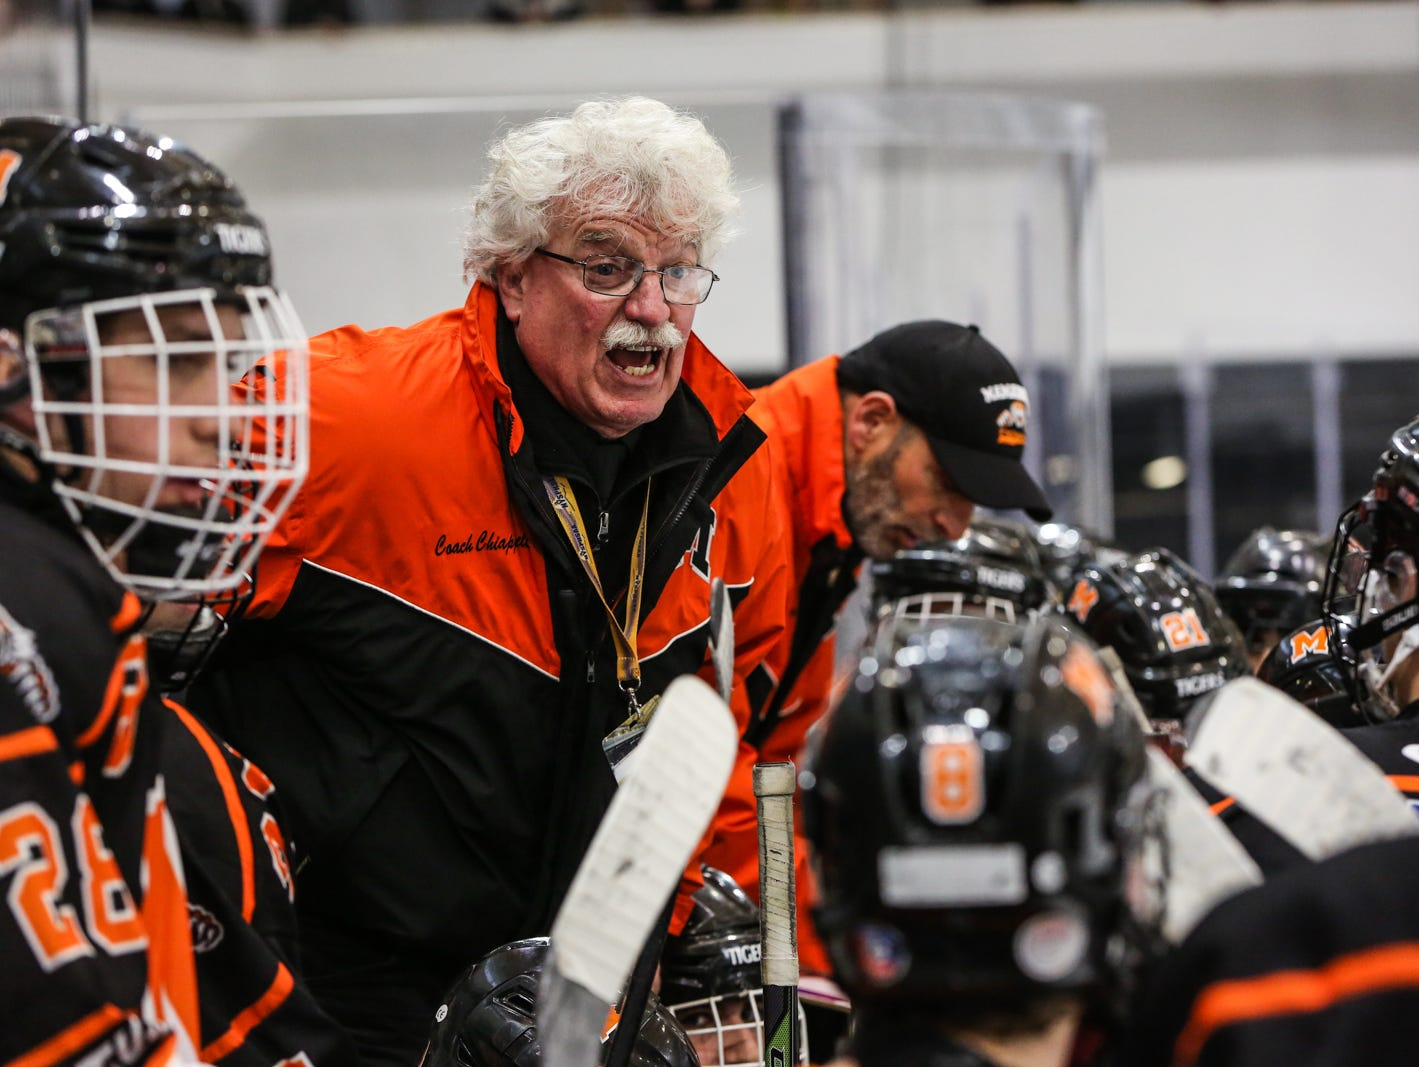 Mamaroneck's Head Coach Michael Chiapparelli (center) talks to his players in the third period. Mamaroneck defeated West Genesee 1-0 and won the NYSPHSAA Division 1 HarborCenter in Buffalo, NY.